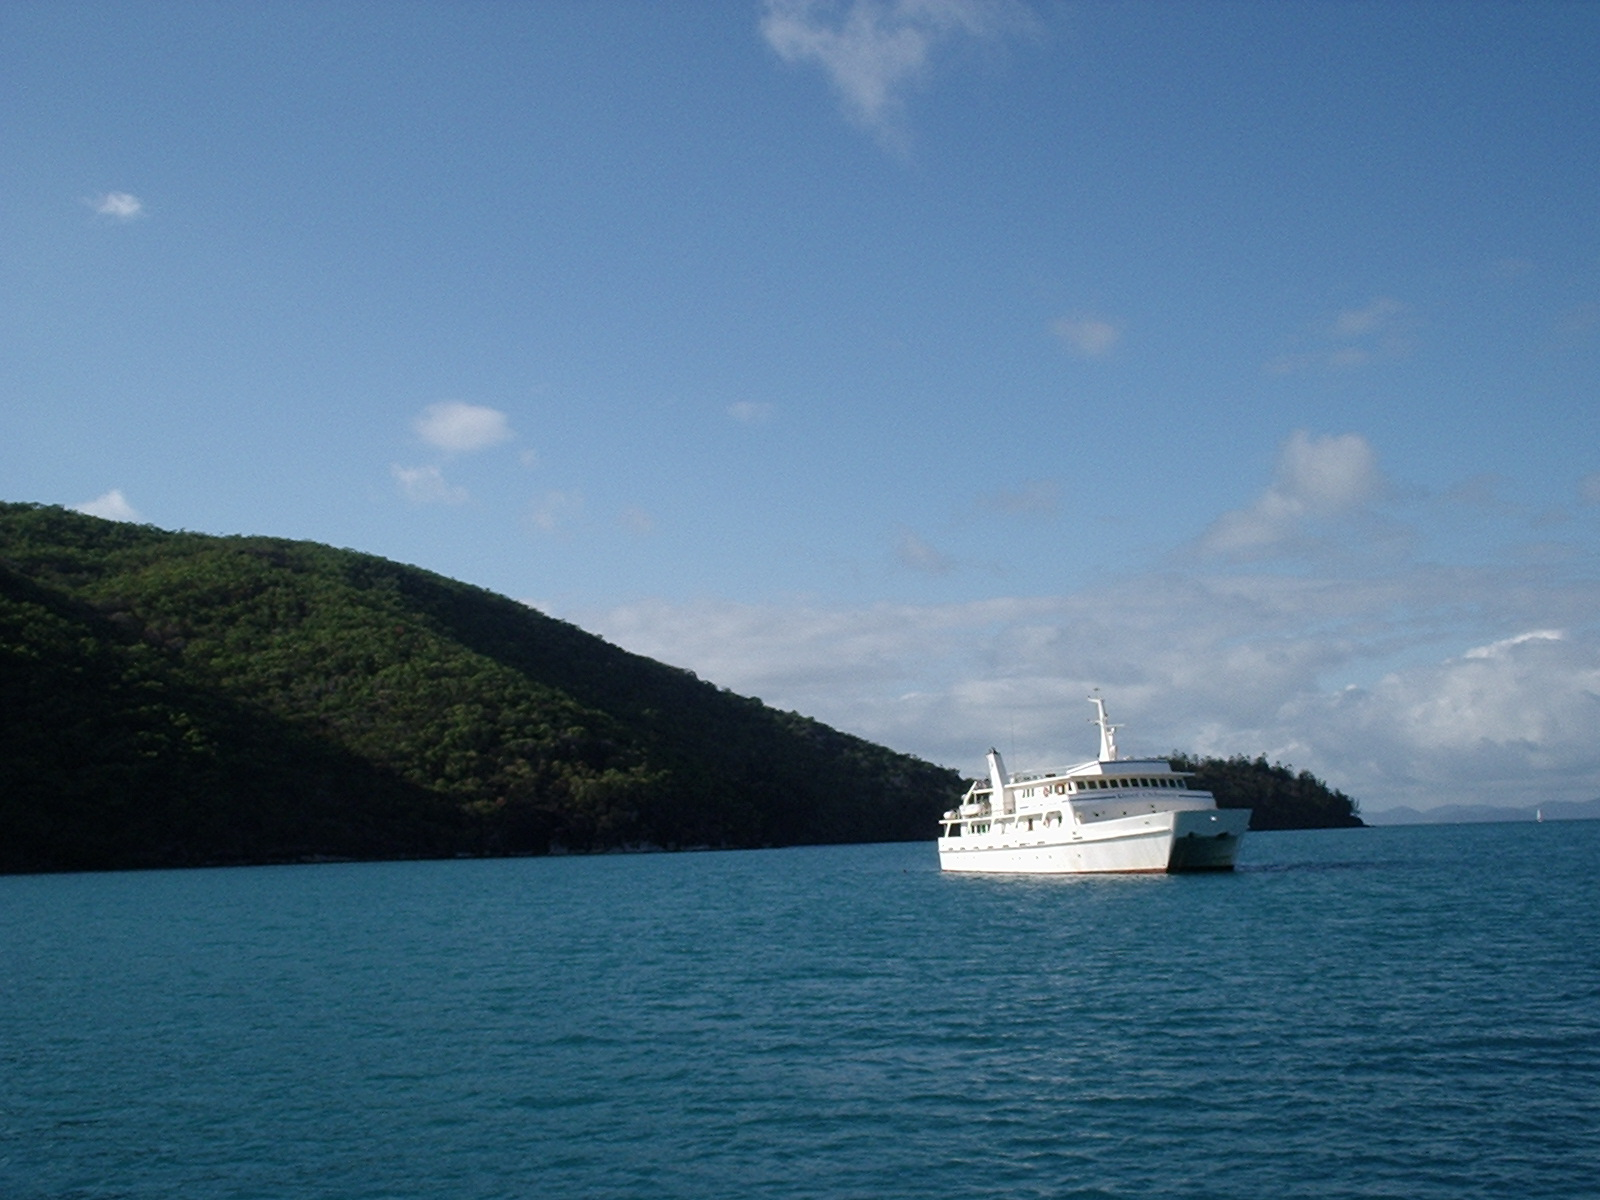 Sailing on the Tongarra, Whitsunday Islands 2